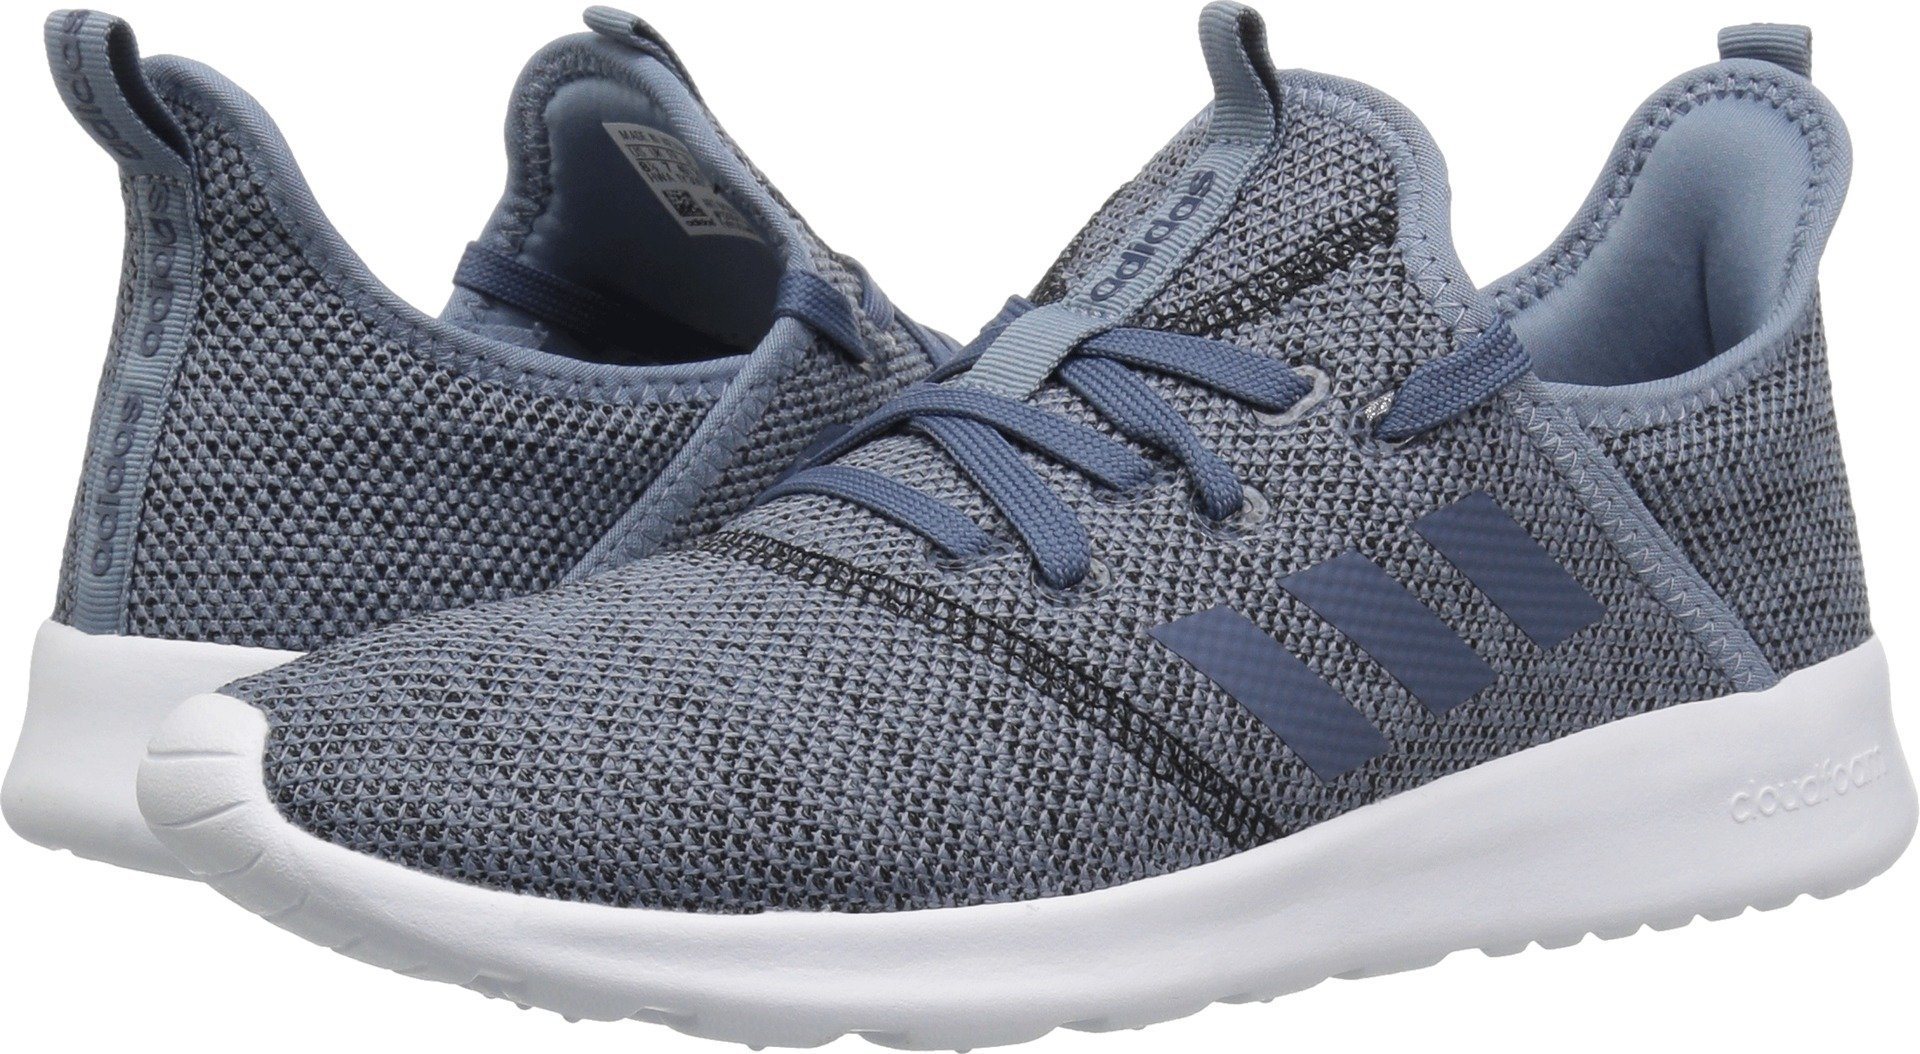 adidas Performance Women's Cloudfoam Pure Running Shoe, Raw Grey/Tech Ink/Black, 8.5 M US